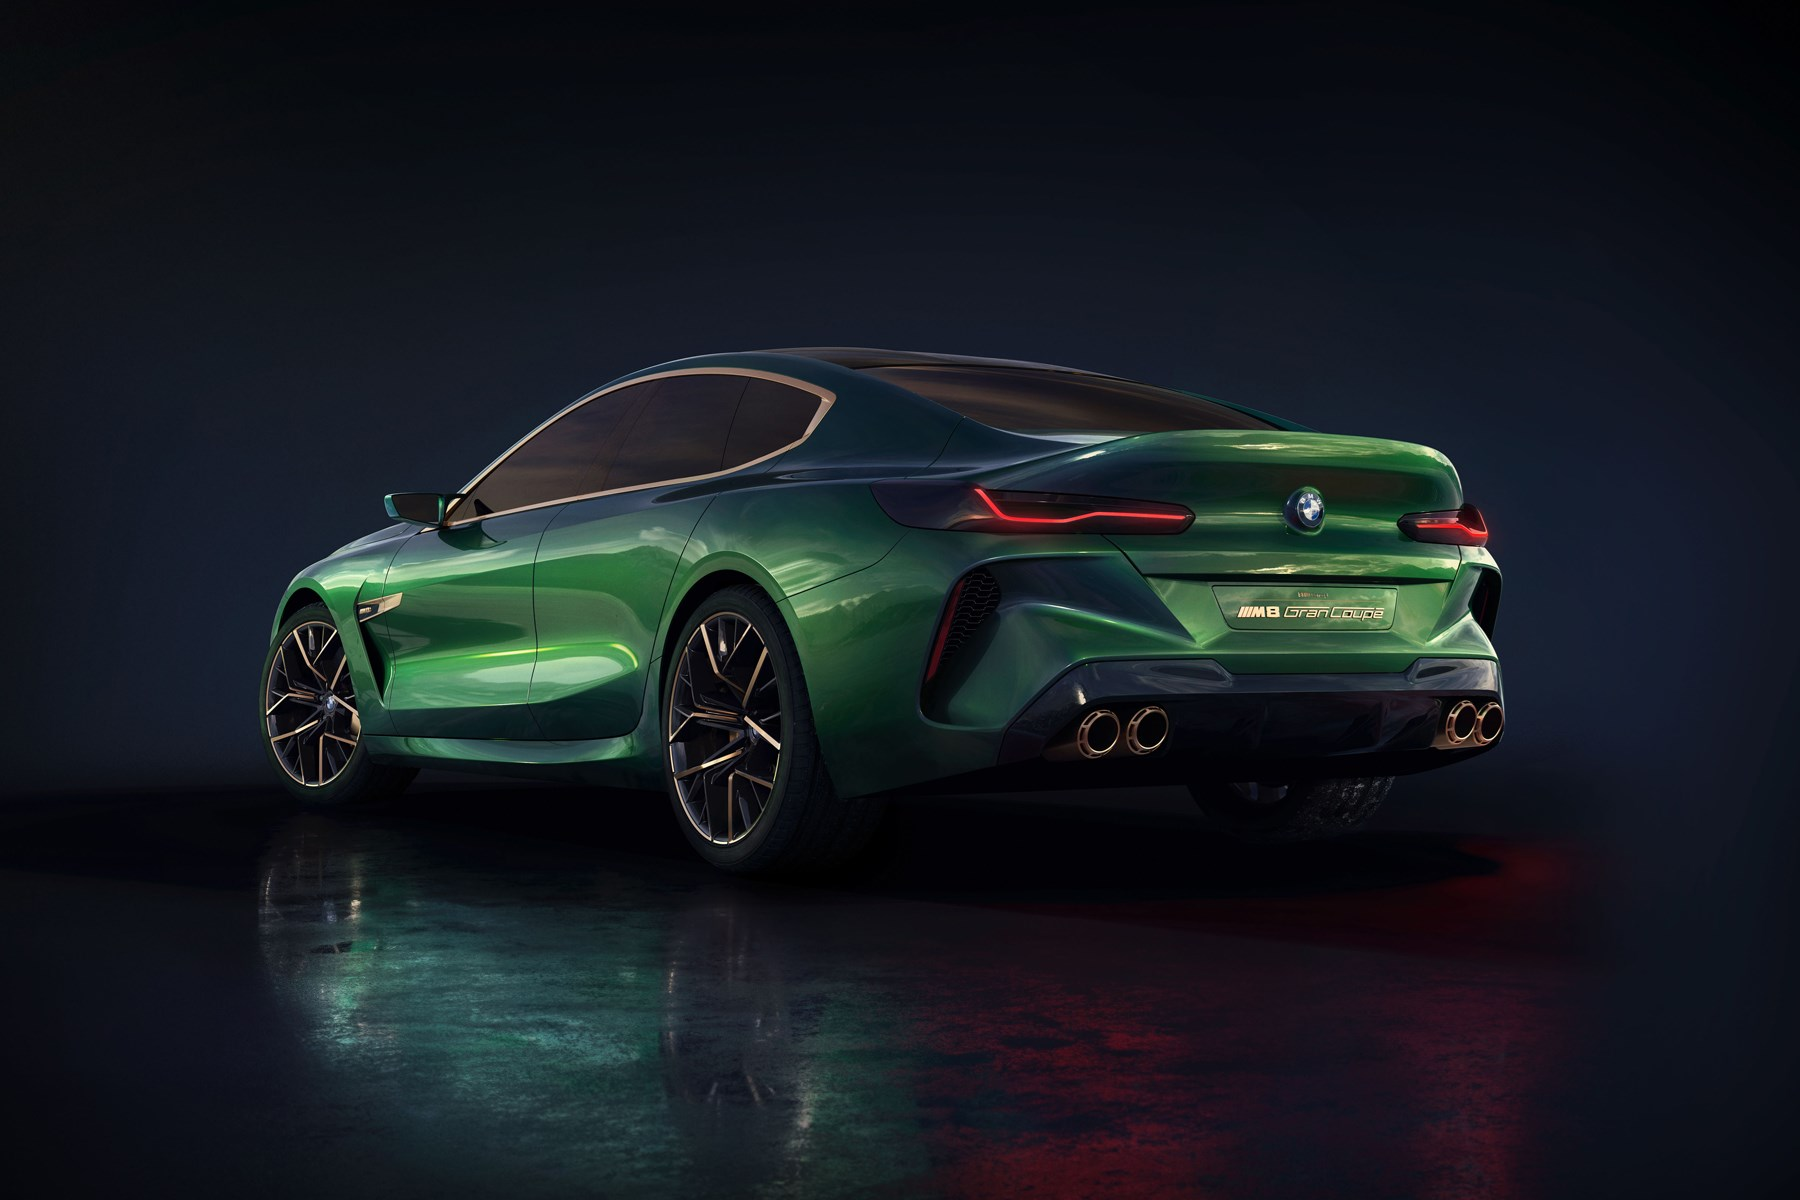 2018 Ferrari Concept >> It's official: the new BMW concept M8 Gran Coupe | CAR Magazine